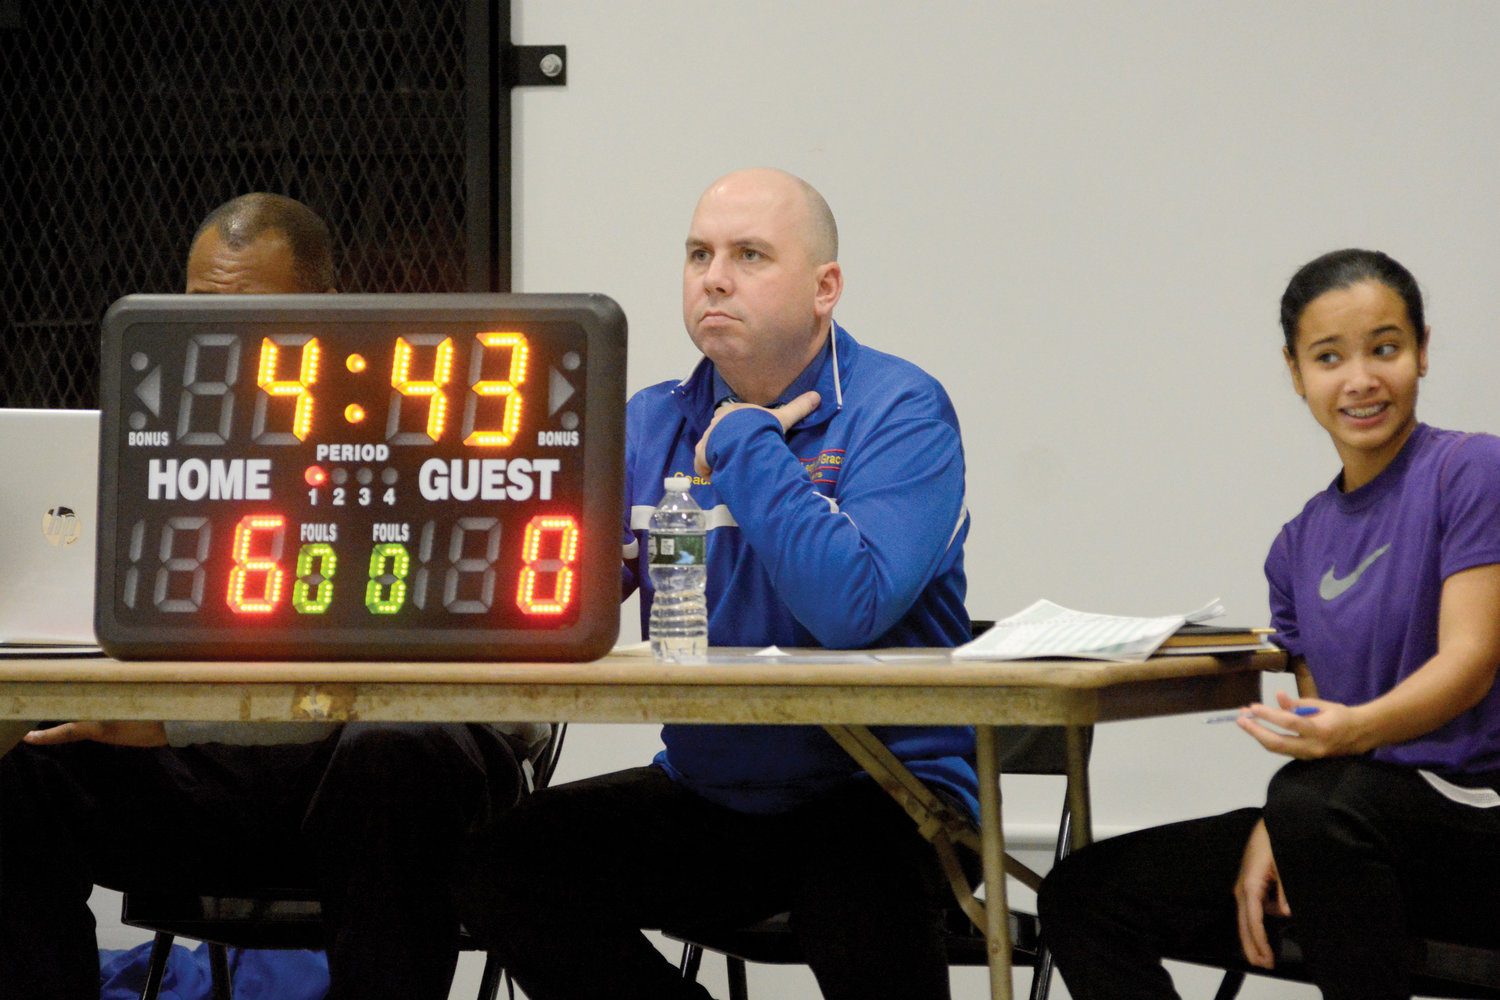 Principal Rich Helmrich operates the scoreboard at the scorer's table.